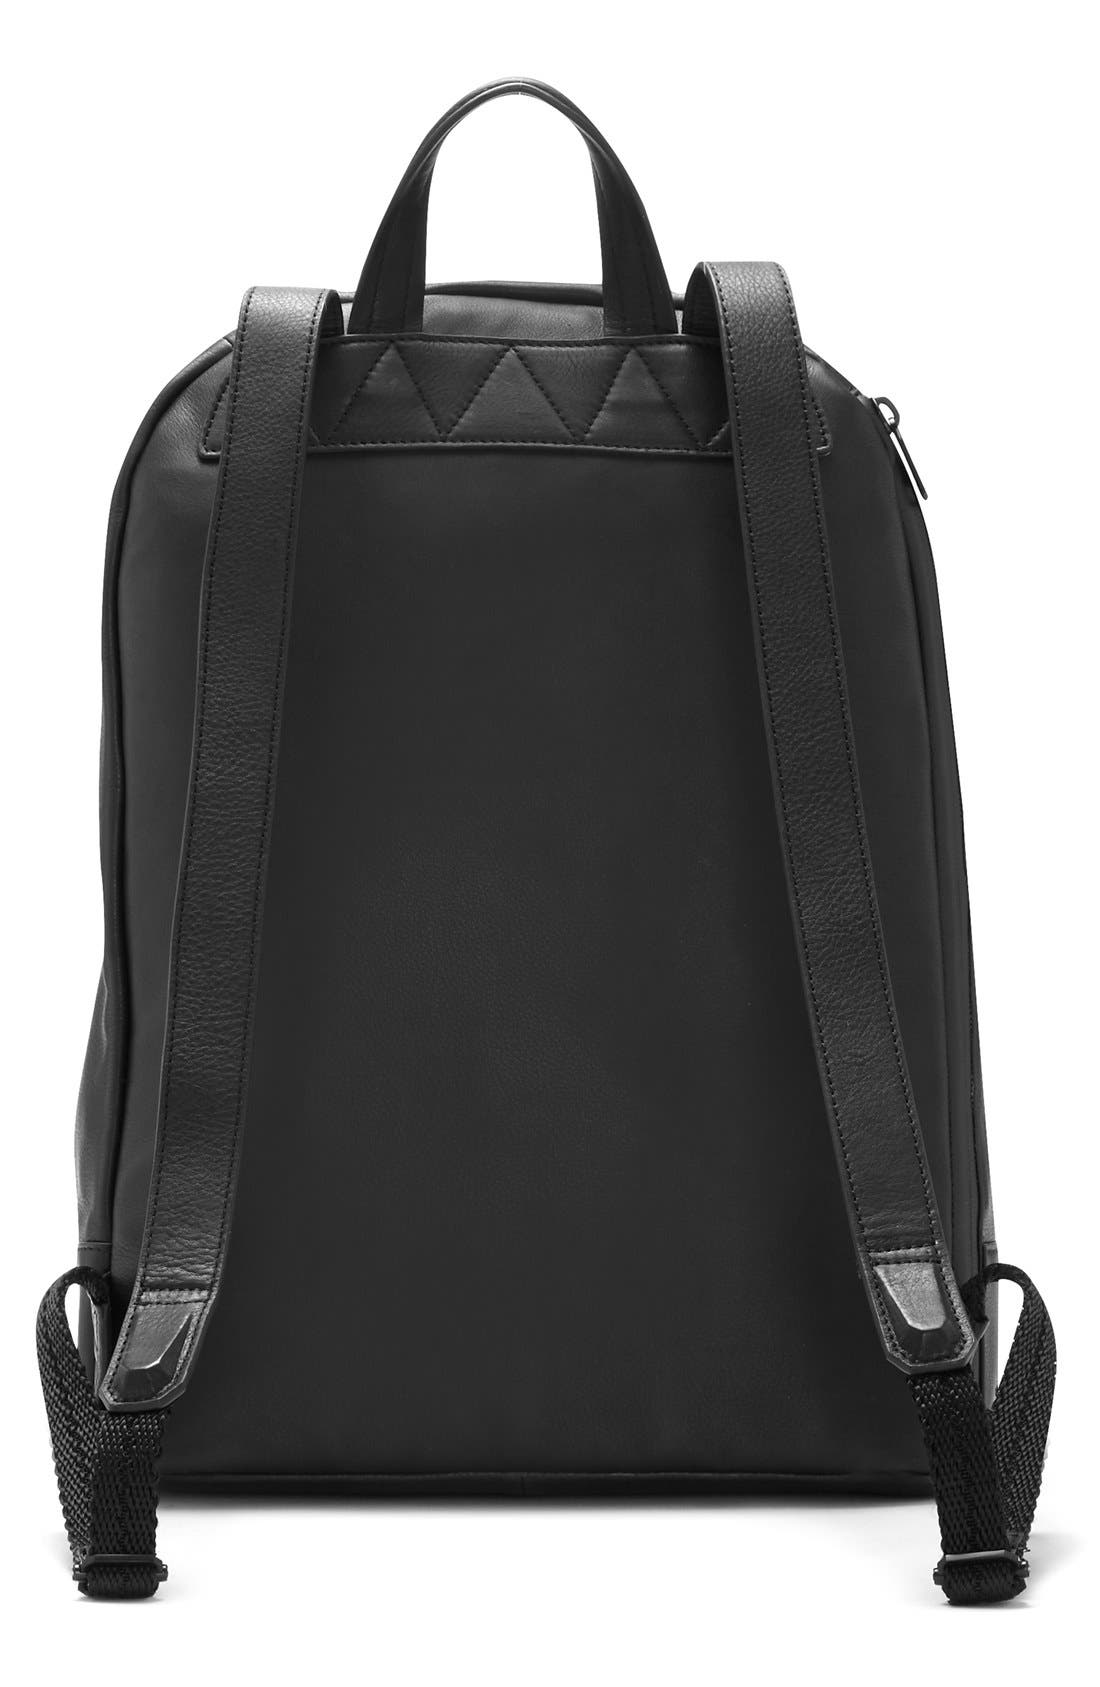 'Tolve' Leather Backpack,                             Alternate thumbnail 3, color,                             001